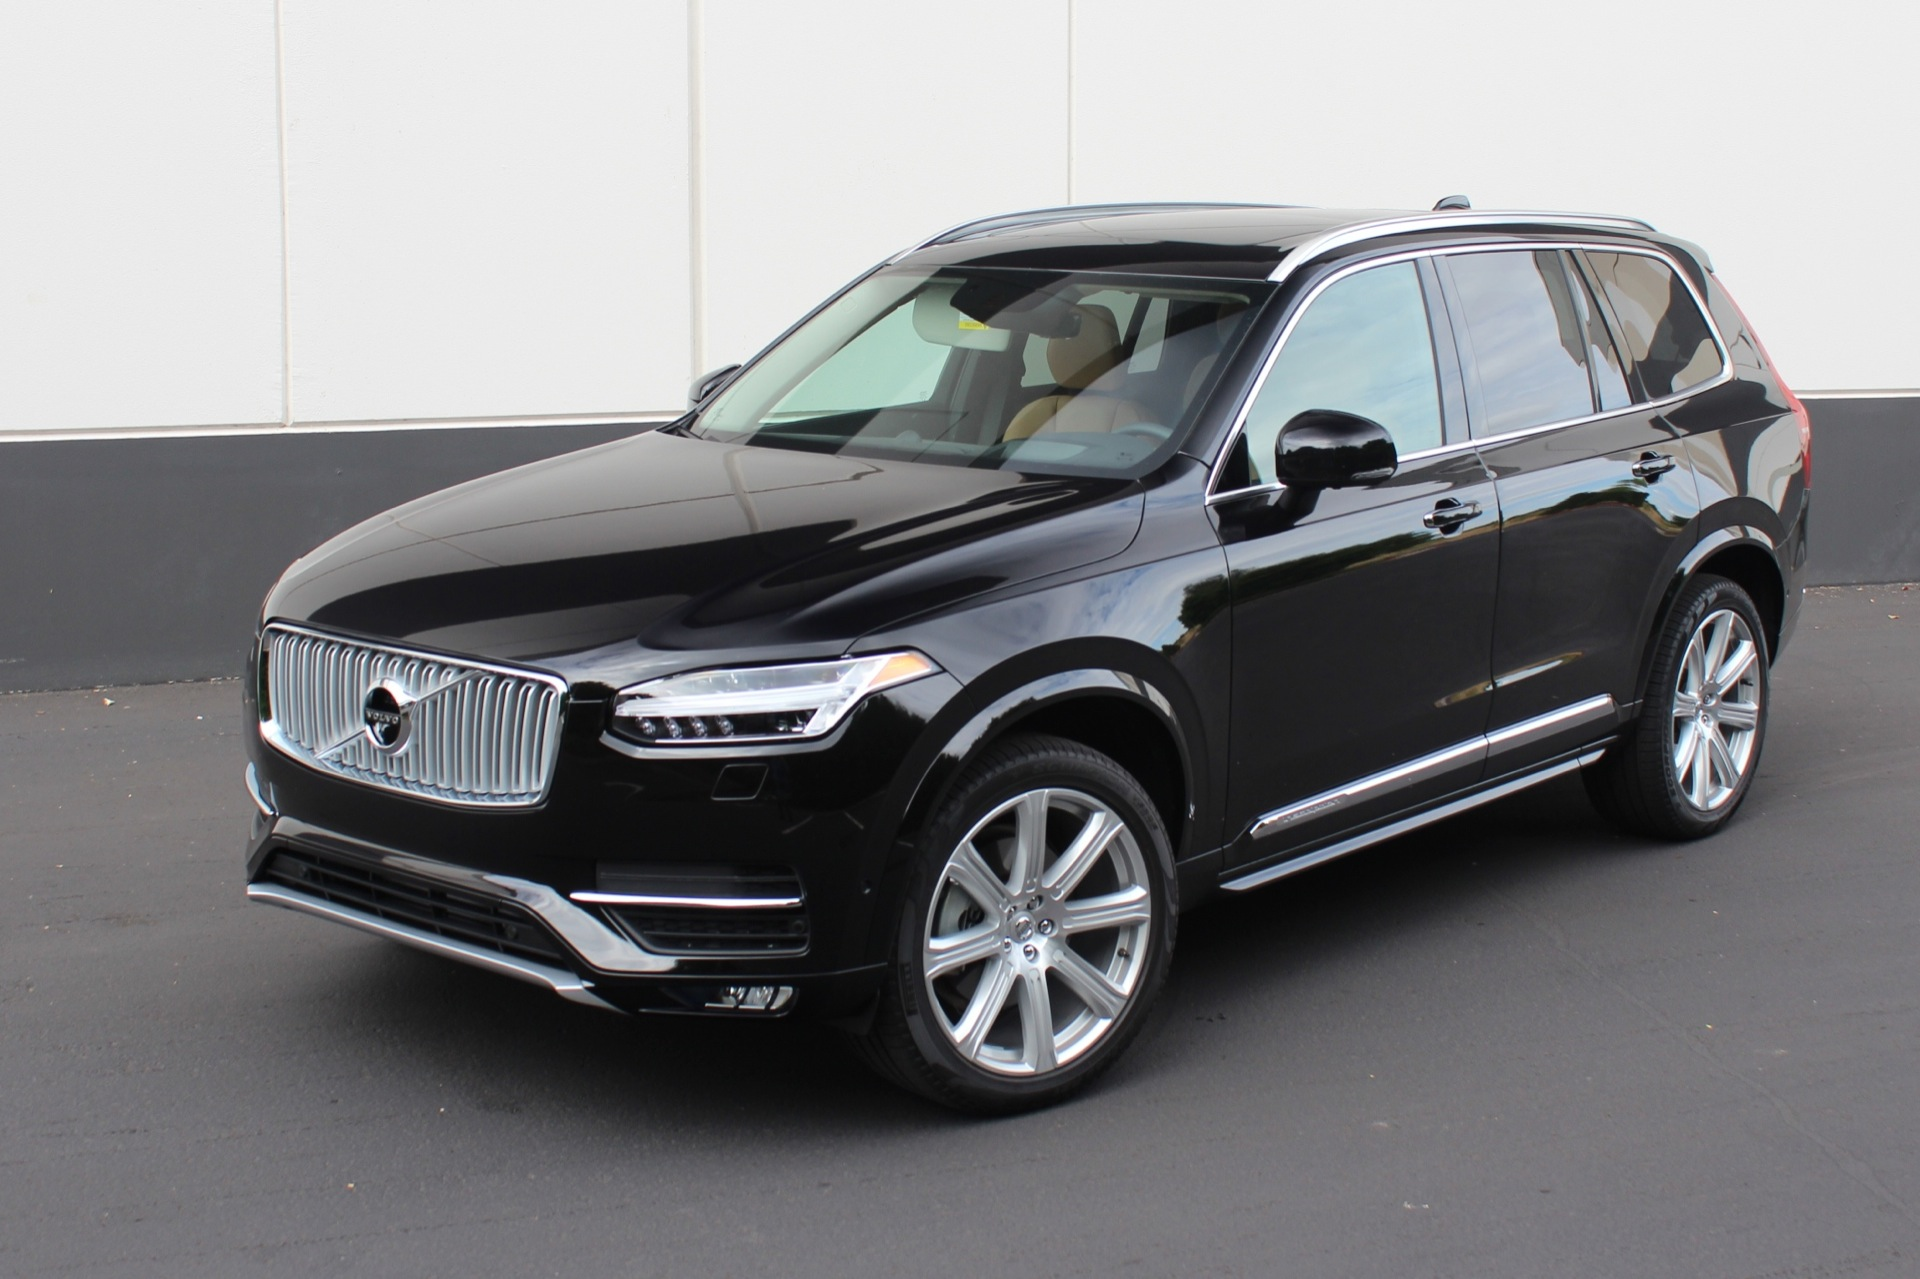 2016 Volvo Xc90 Features Review The Car Connection